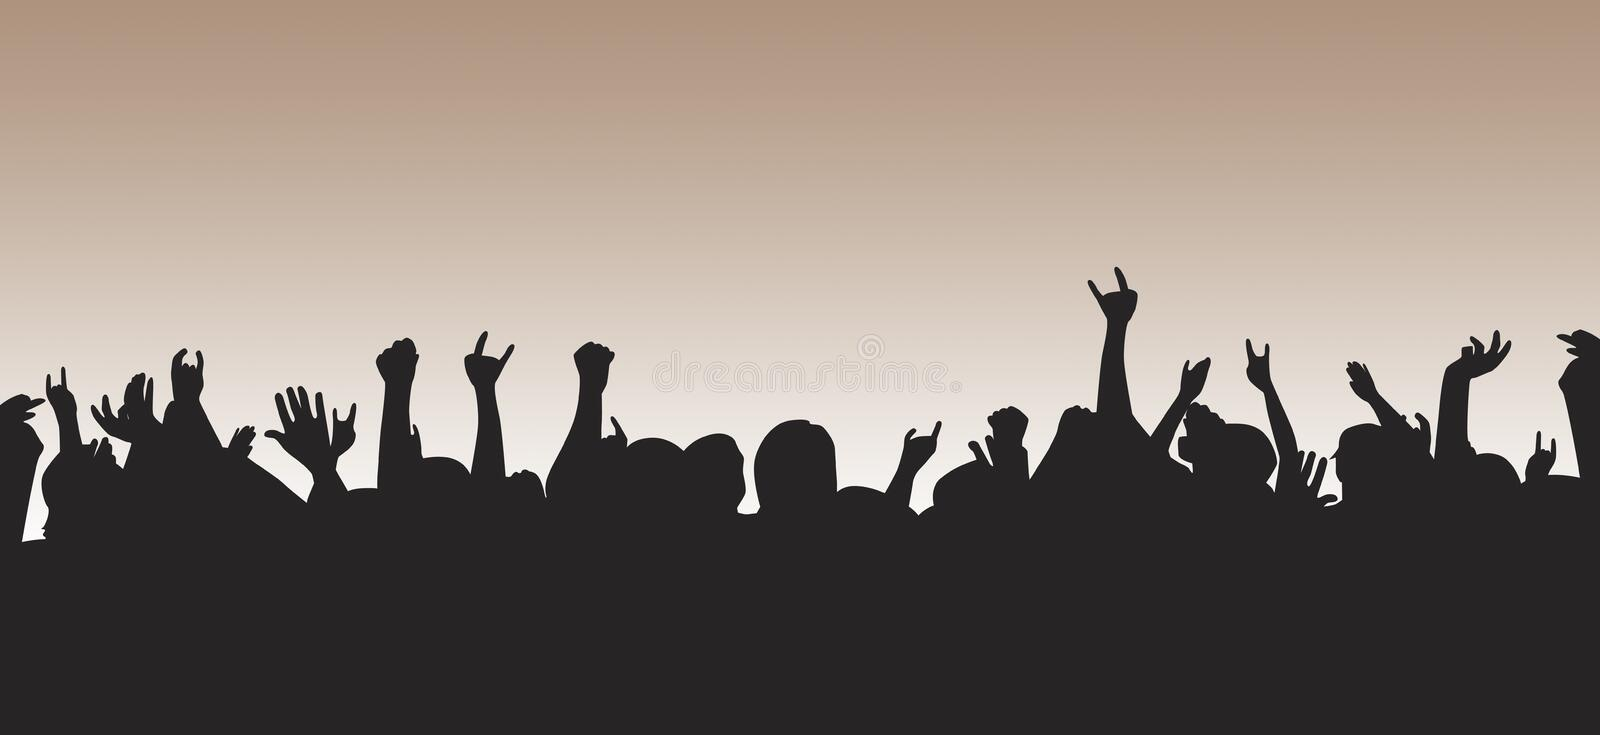 Pumped Up Crowd Royalty Free Stock Photography